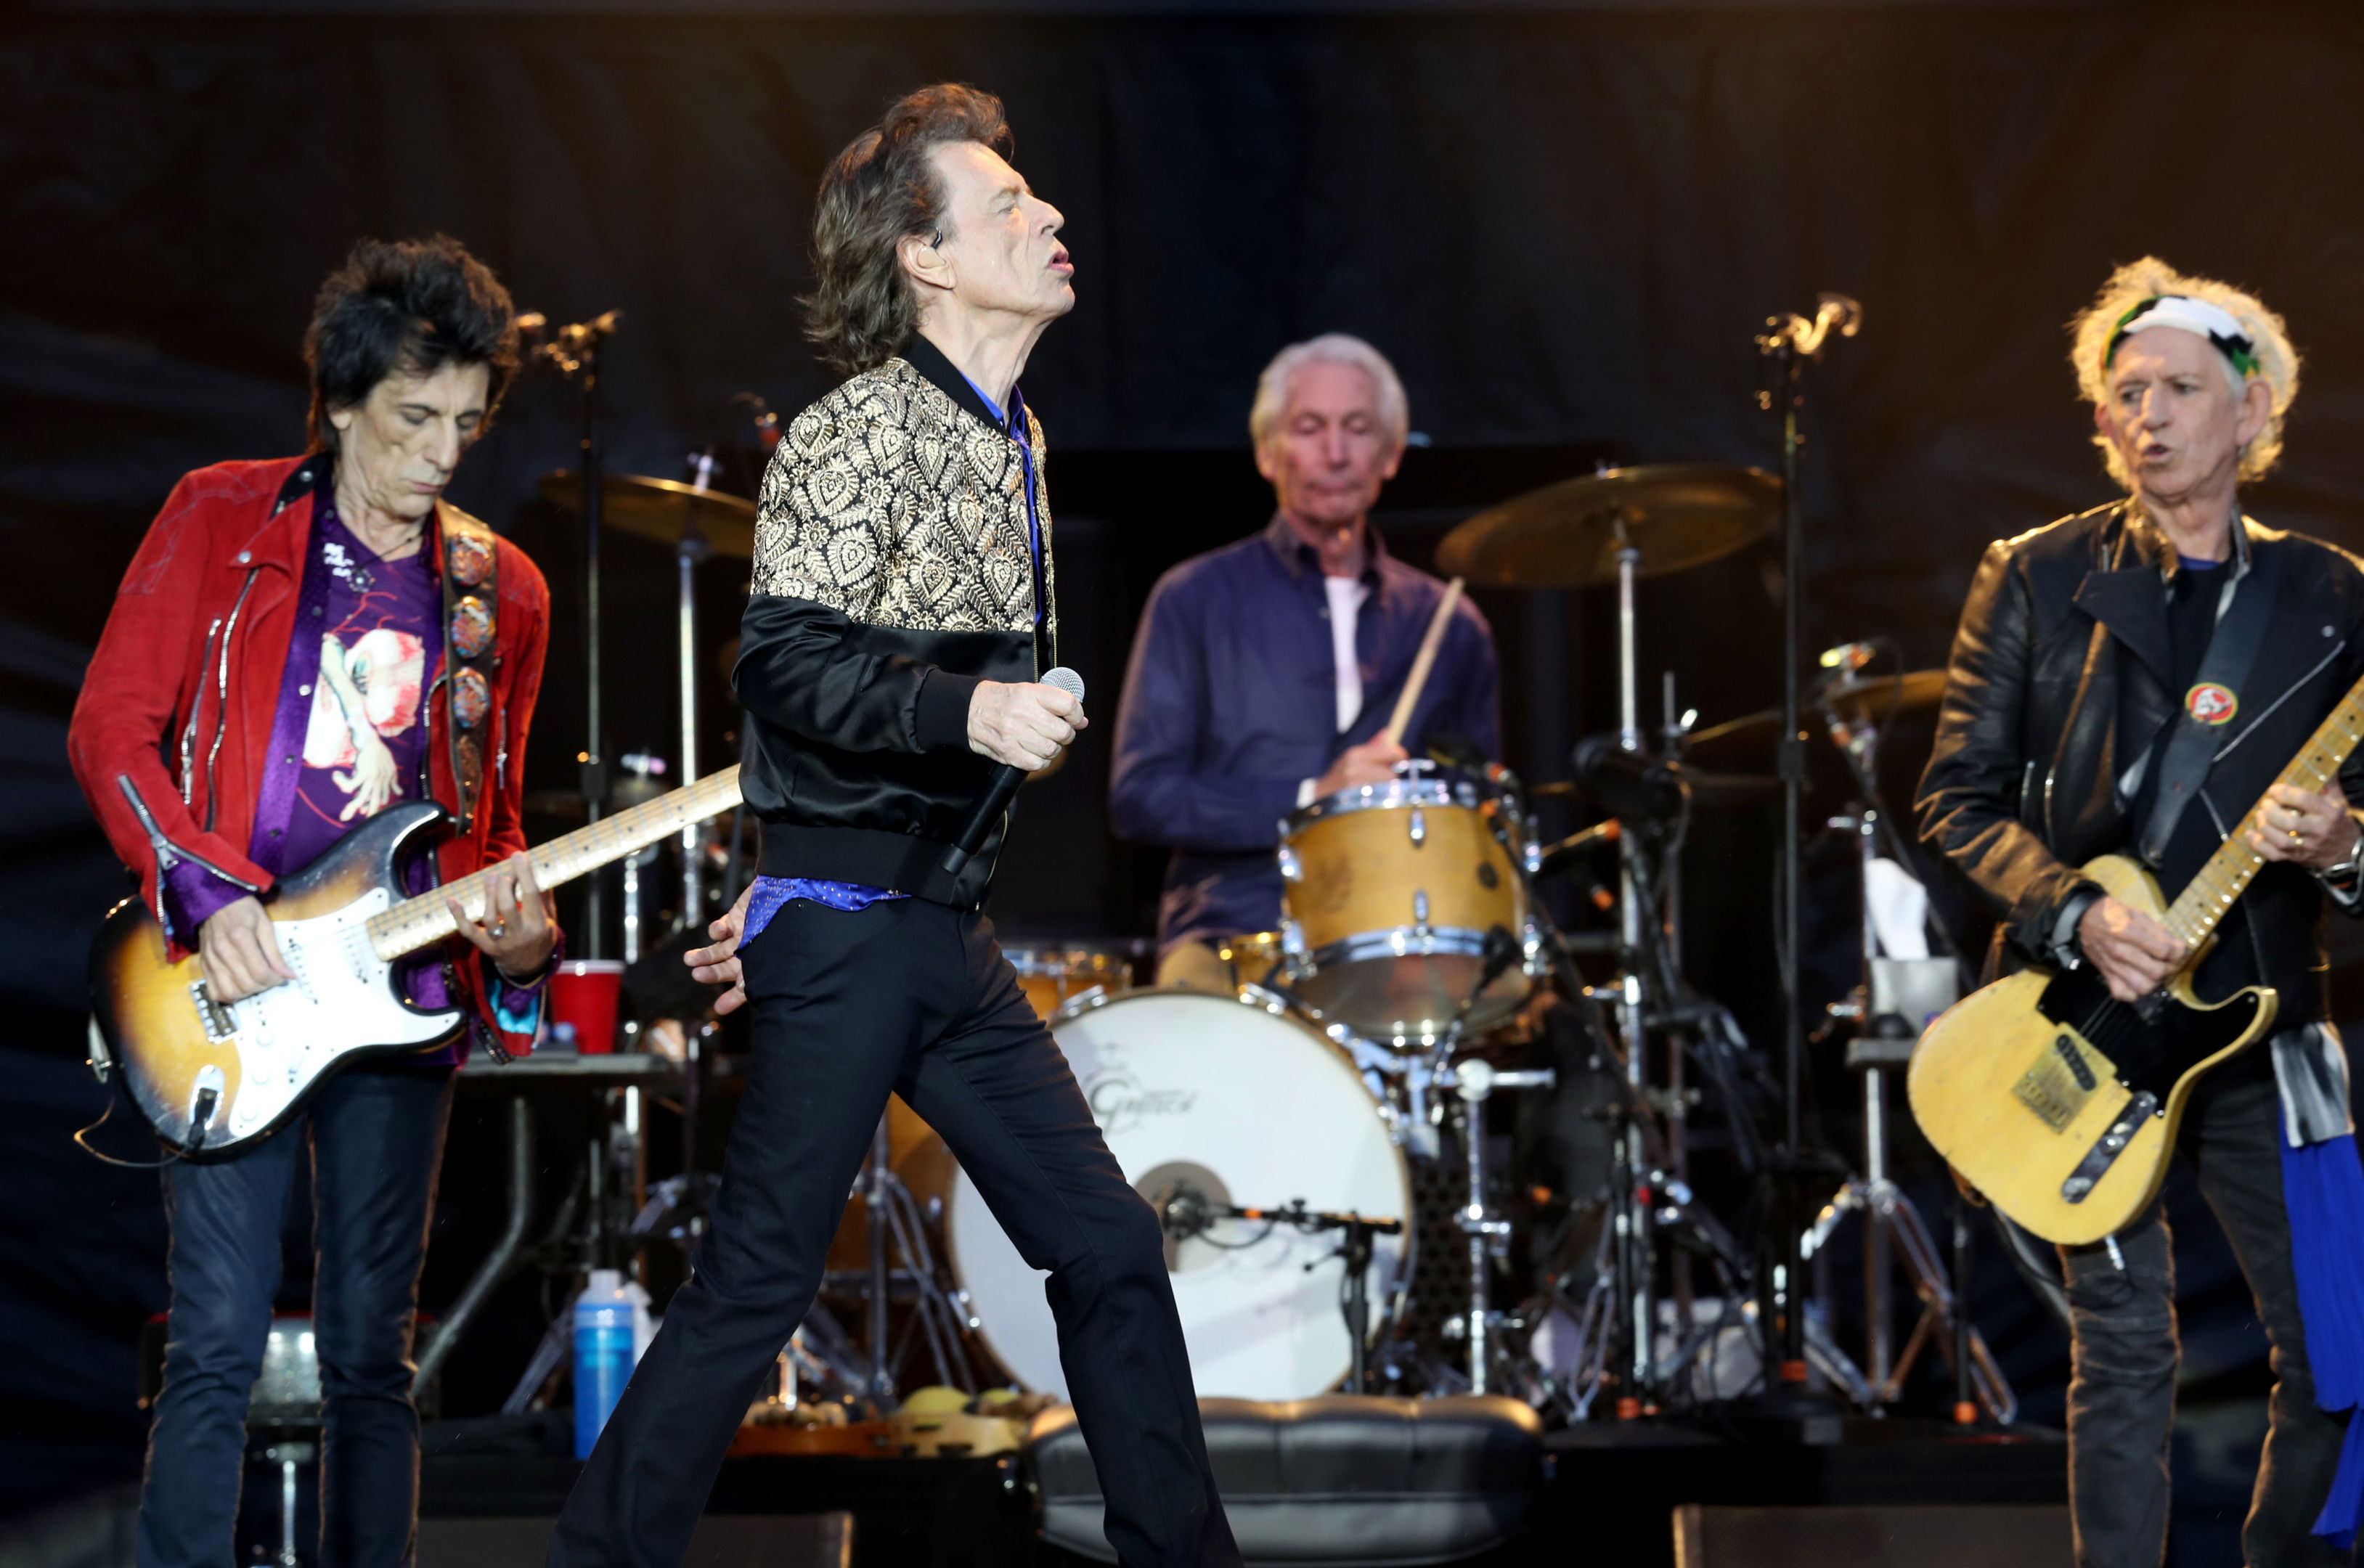 Ronnie Wood, Mick Jagger, Charlie Watts and Keith Richards of The Rolling Stones during their gig at the Murrayfield Stadium in Edinburgh